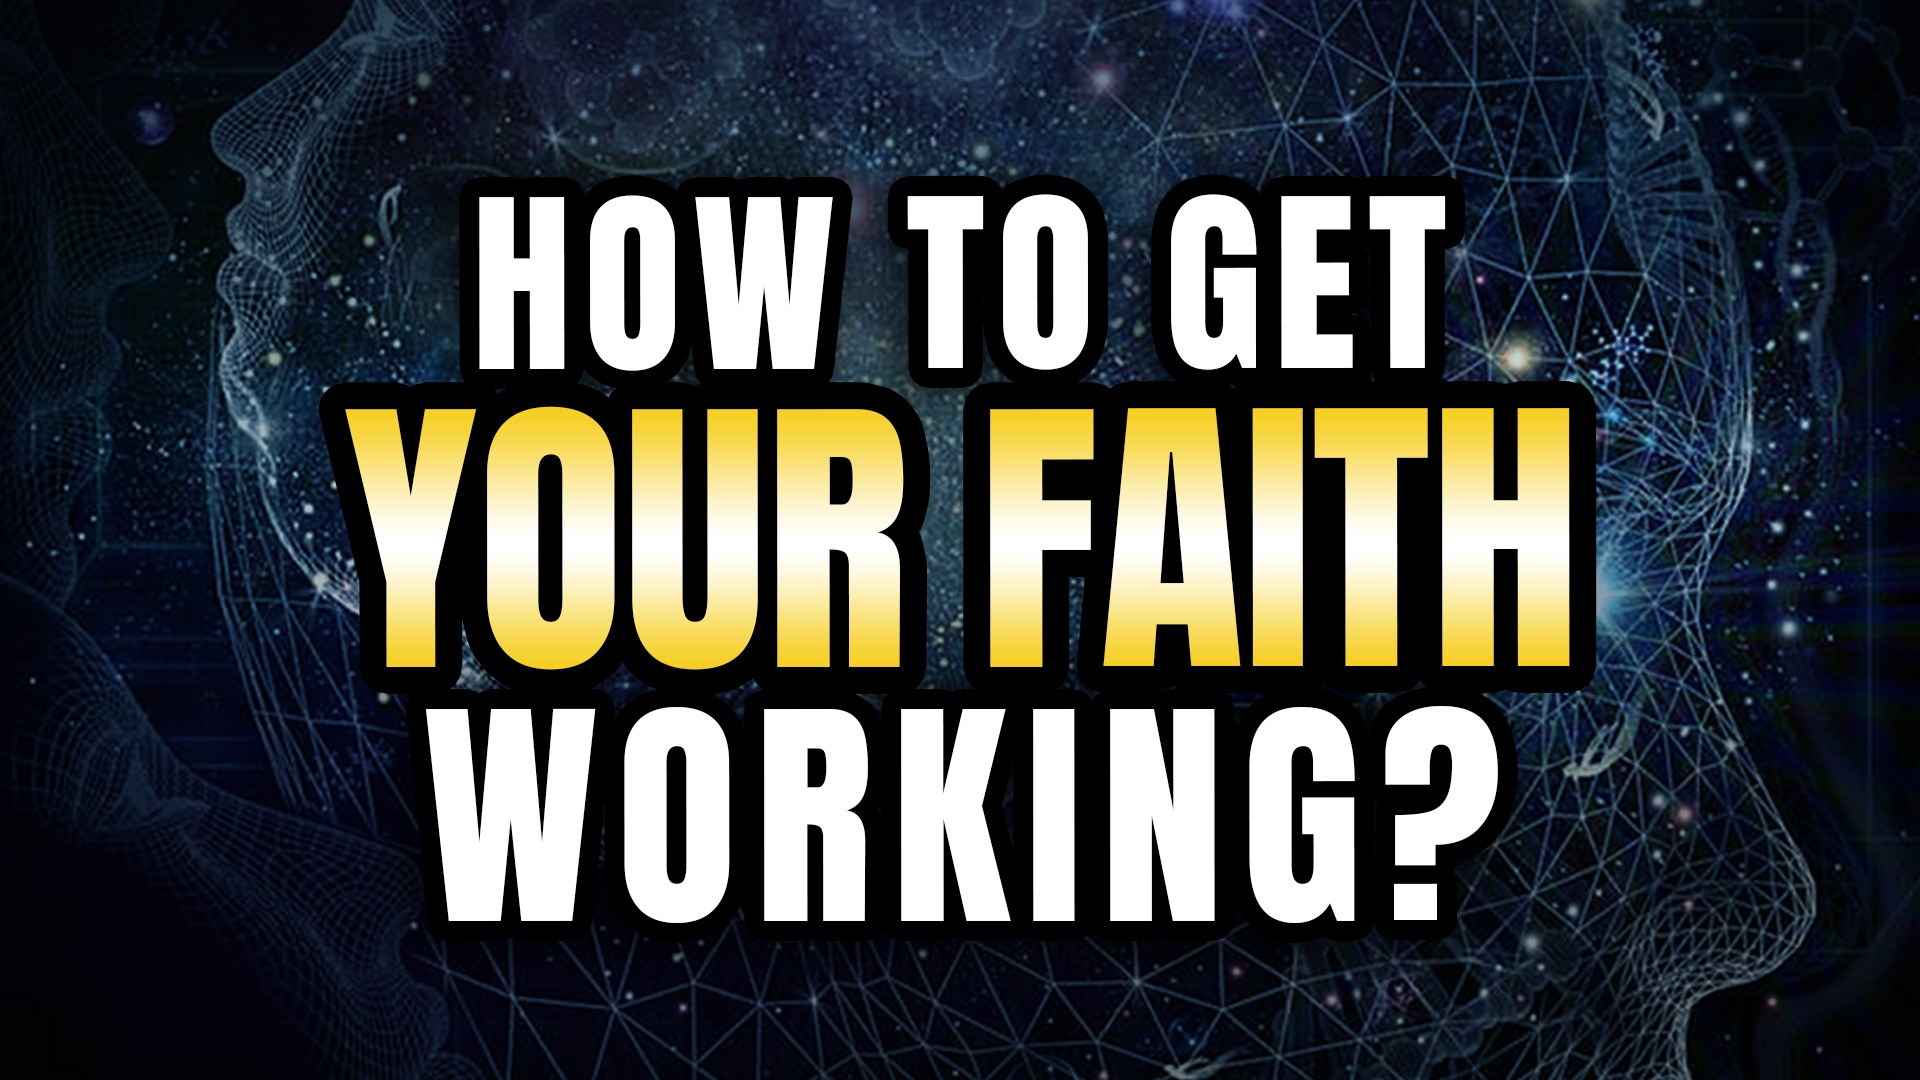 How To Get Your Faith Working?